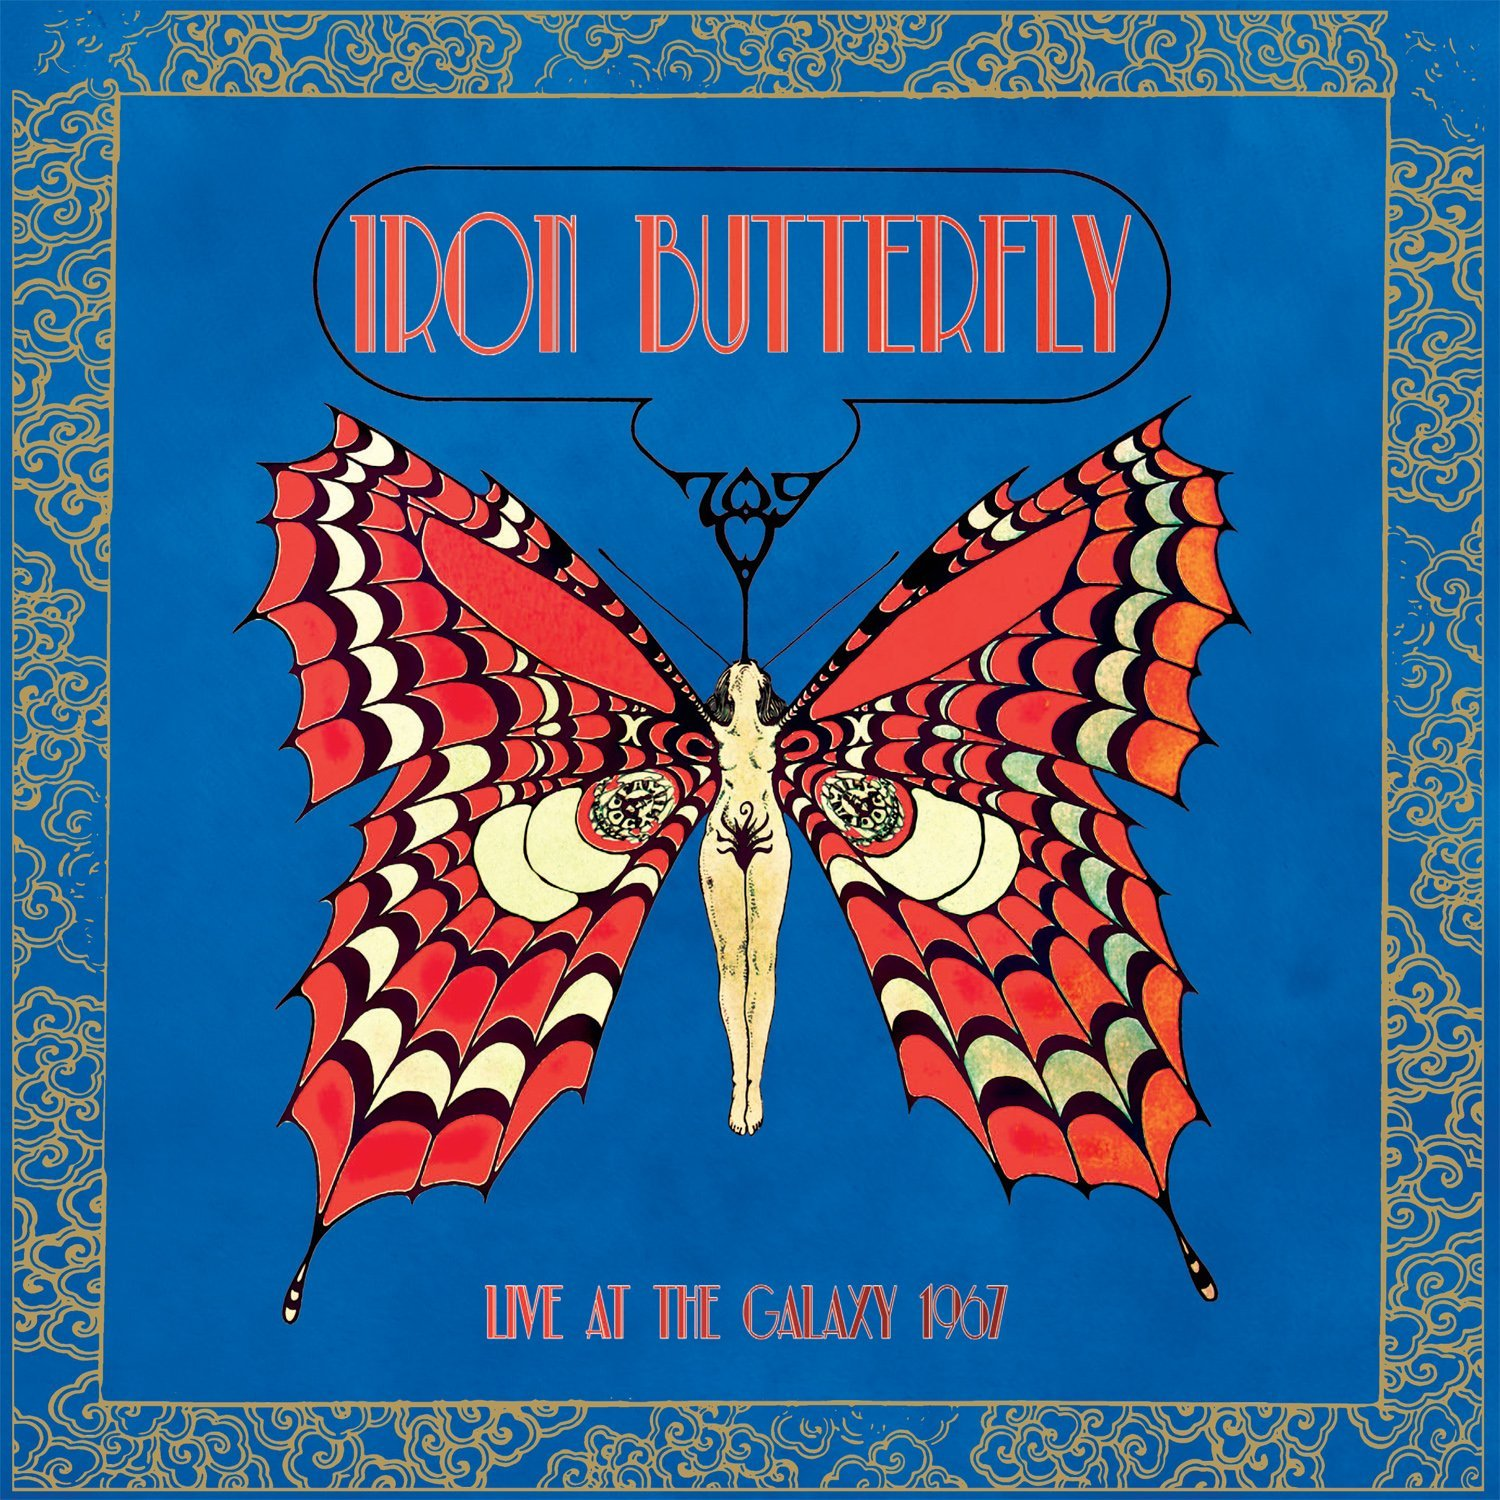 Live at the Galaxy 1967 Cover art